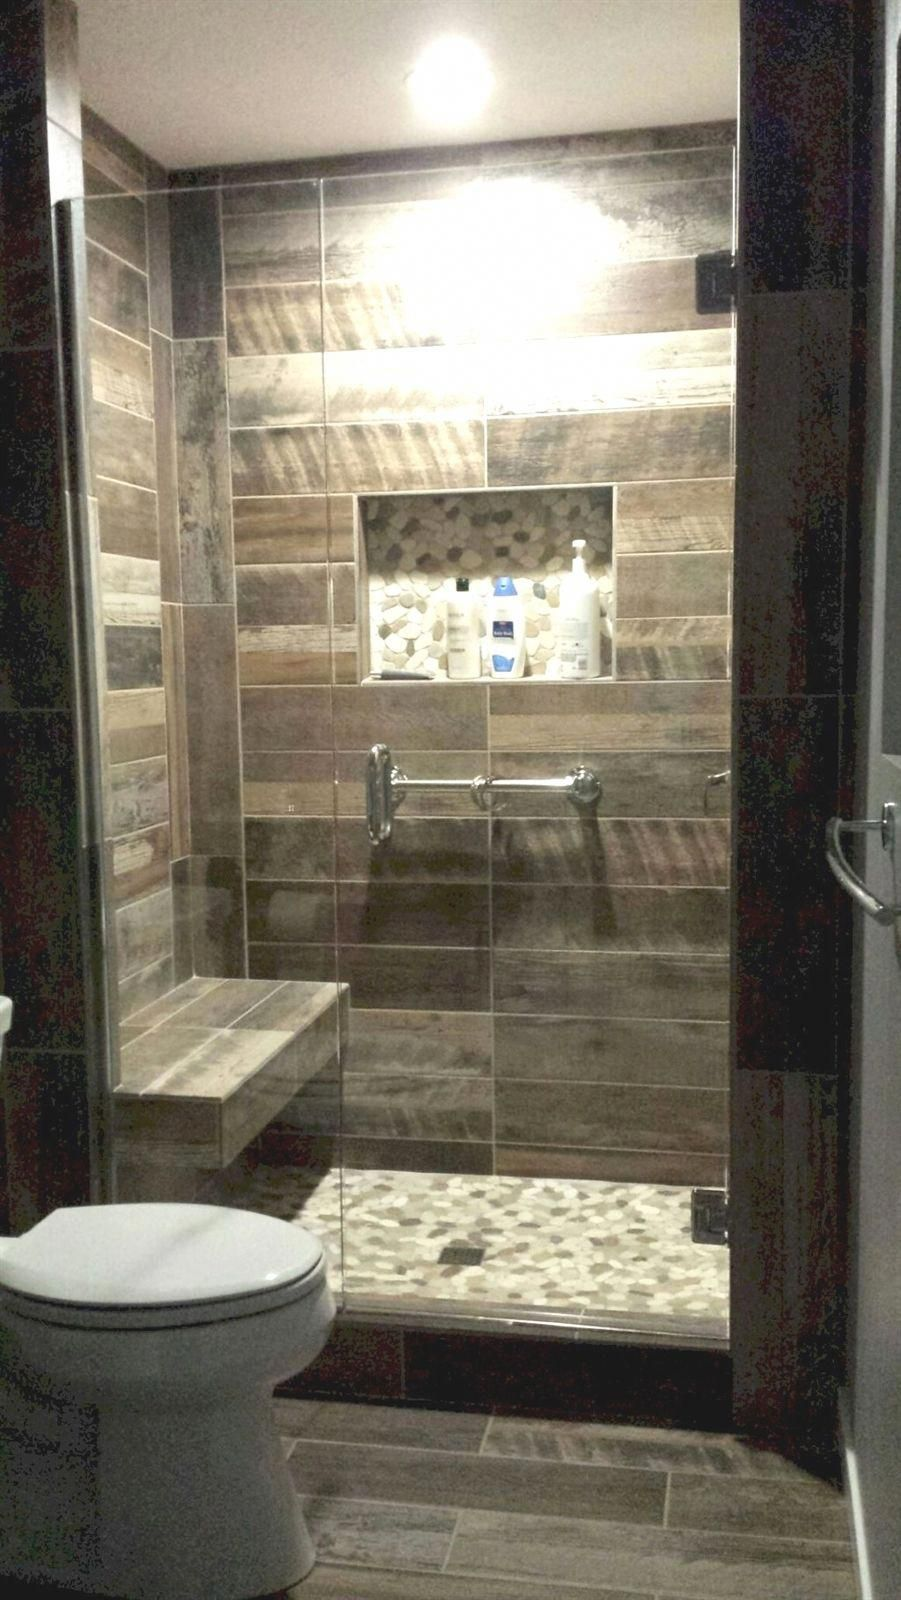 I M Just Truly Looking Towards Attempting Doing This Bathrooms Remodel Small Budget Bathroom Remodel Bathroom Renovation Diy Bathroom Renovation Cost